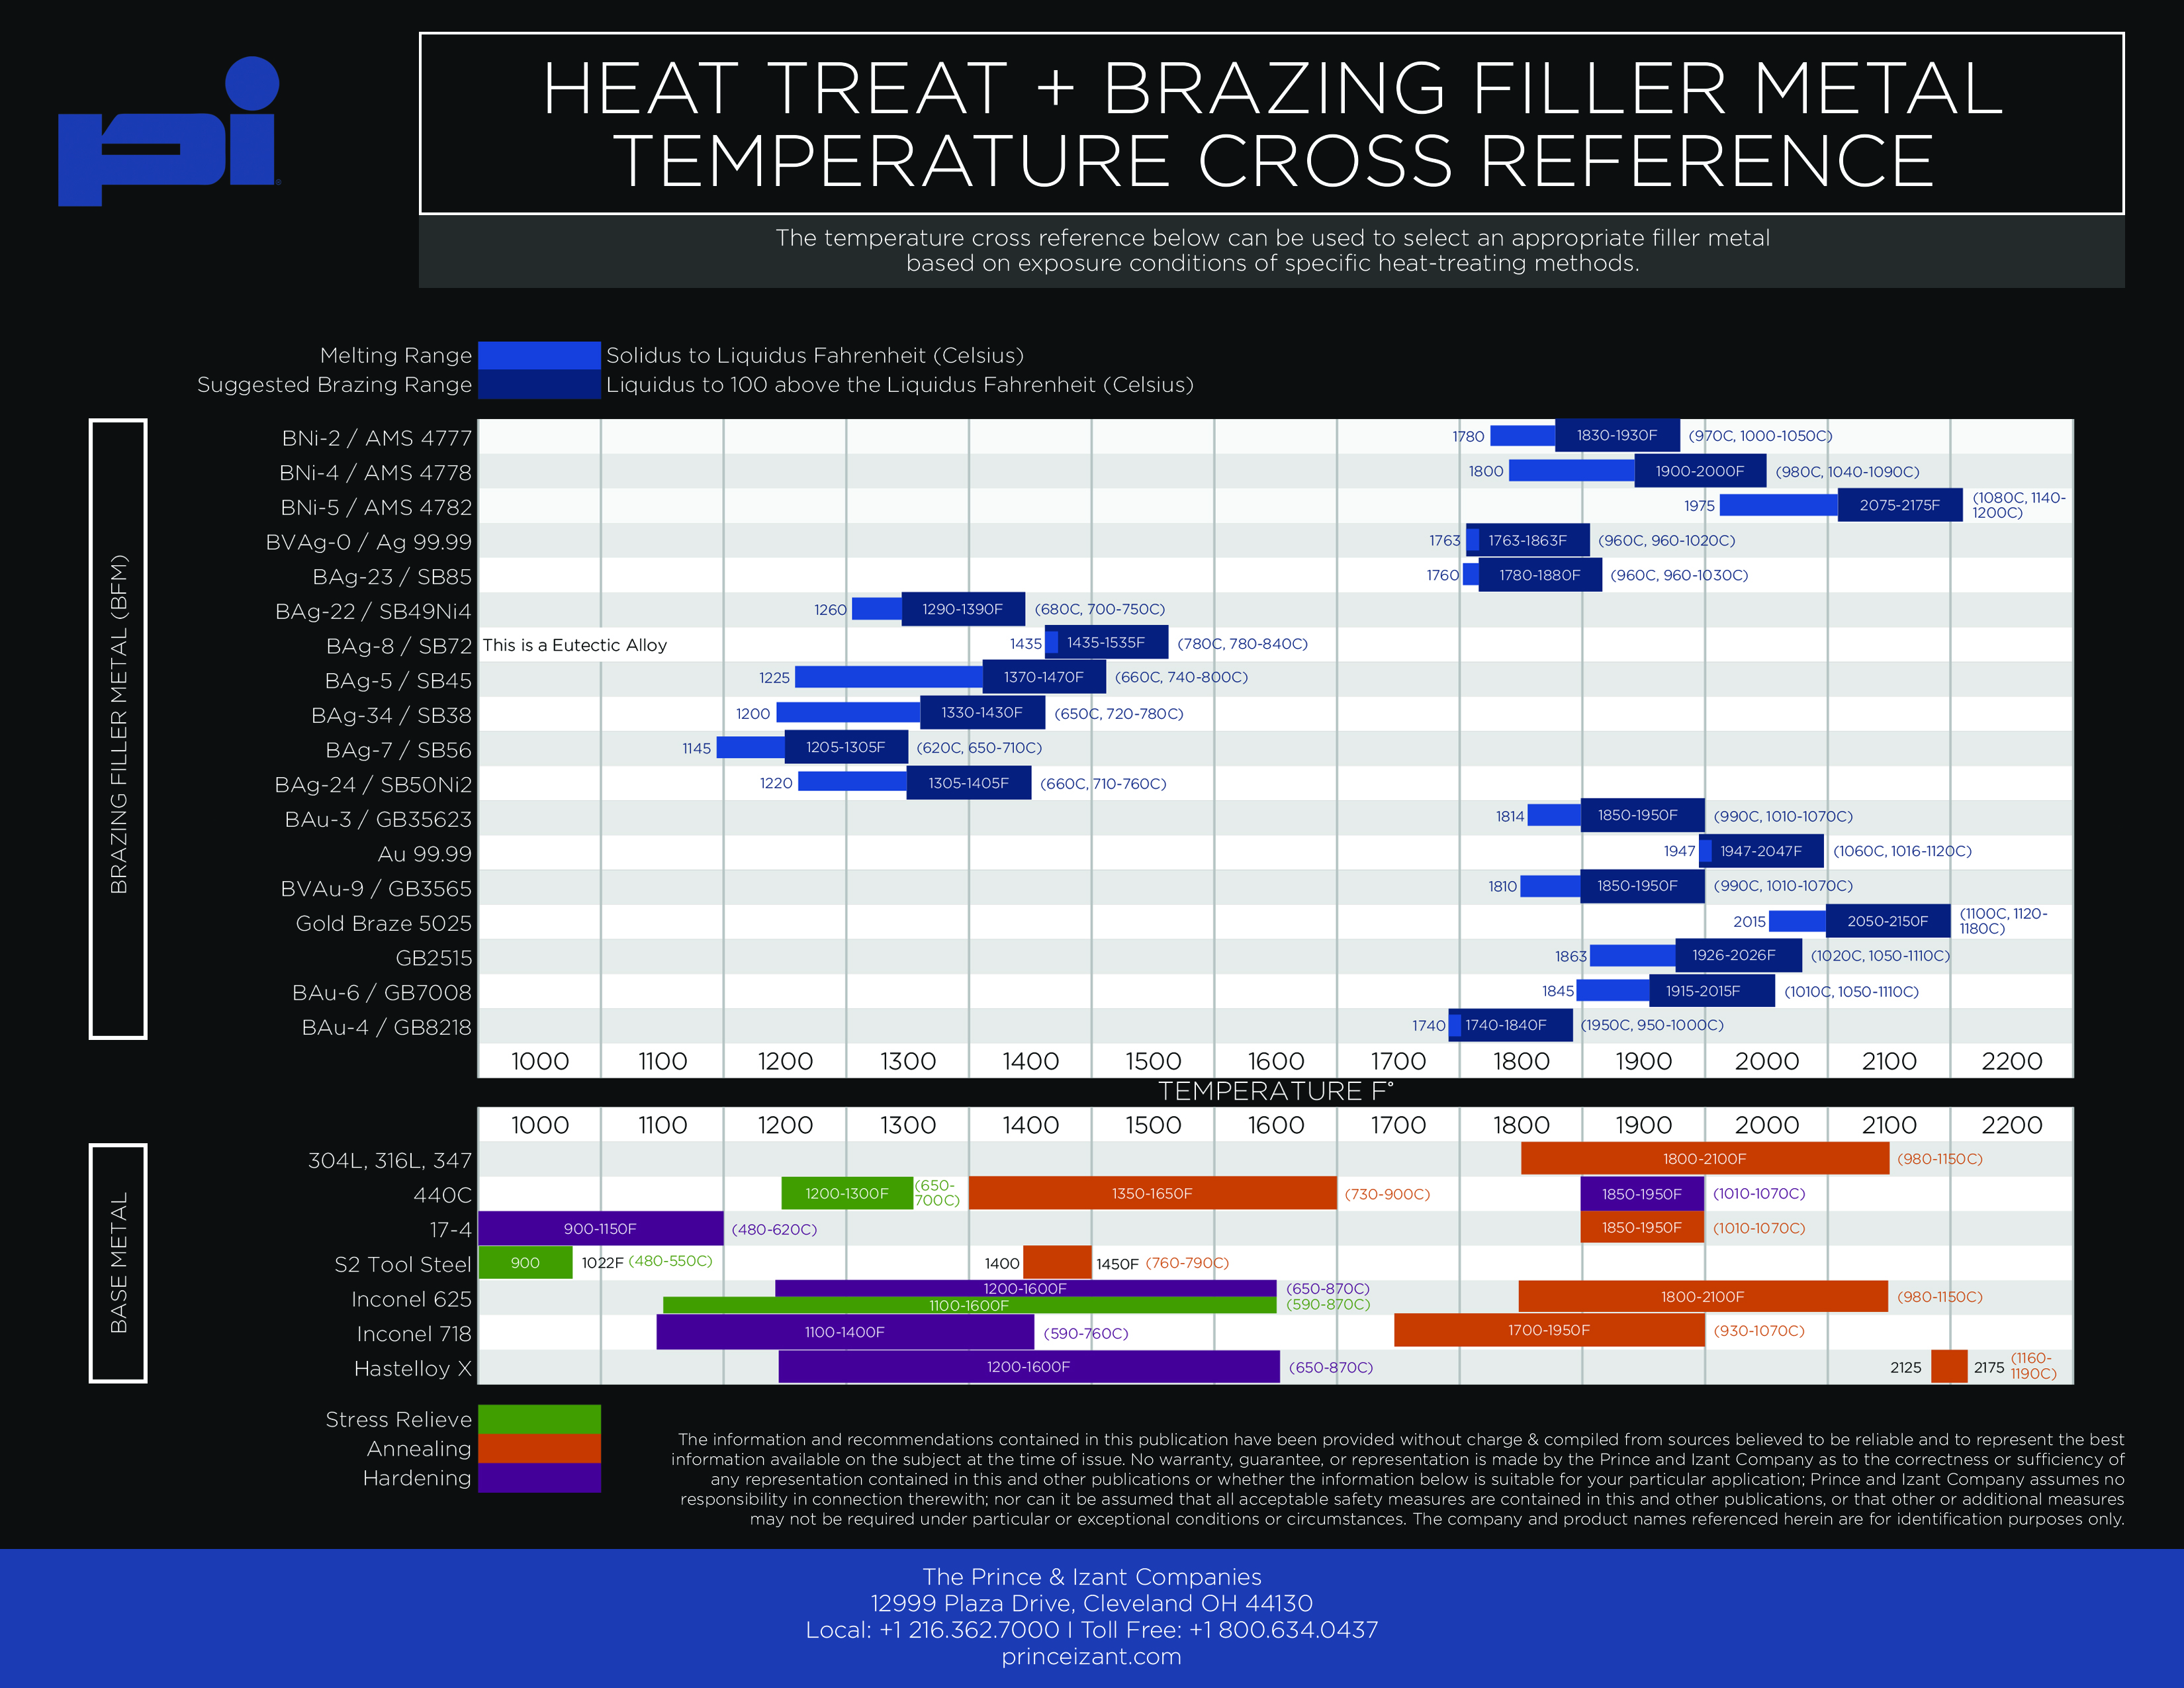 Heat Treat and Brazing Filler Metal Temperature Cross Reference